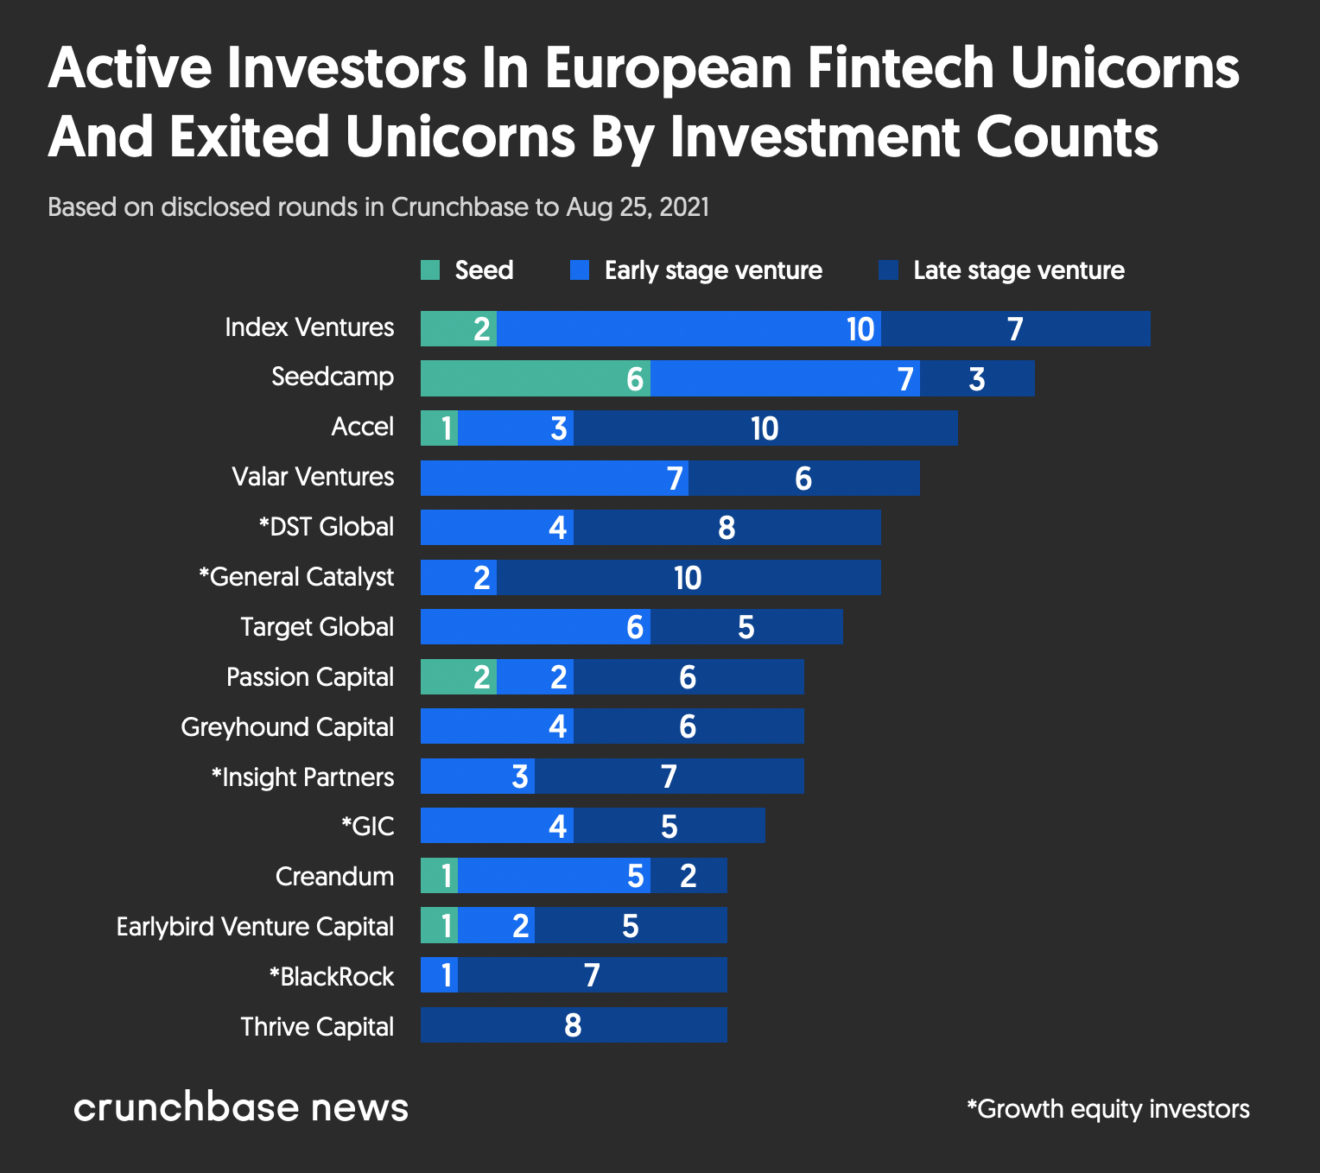 Active investors in European fintech unicorns and exited unicorns by investment counts, Source- Crunchbase, Aug 2021